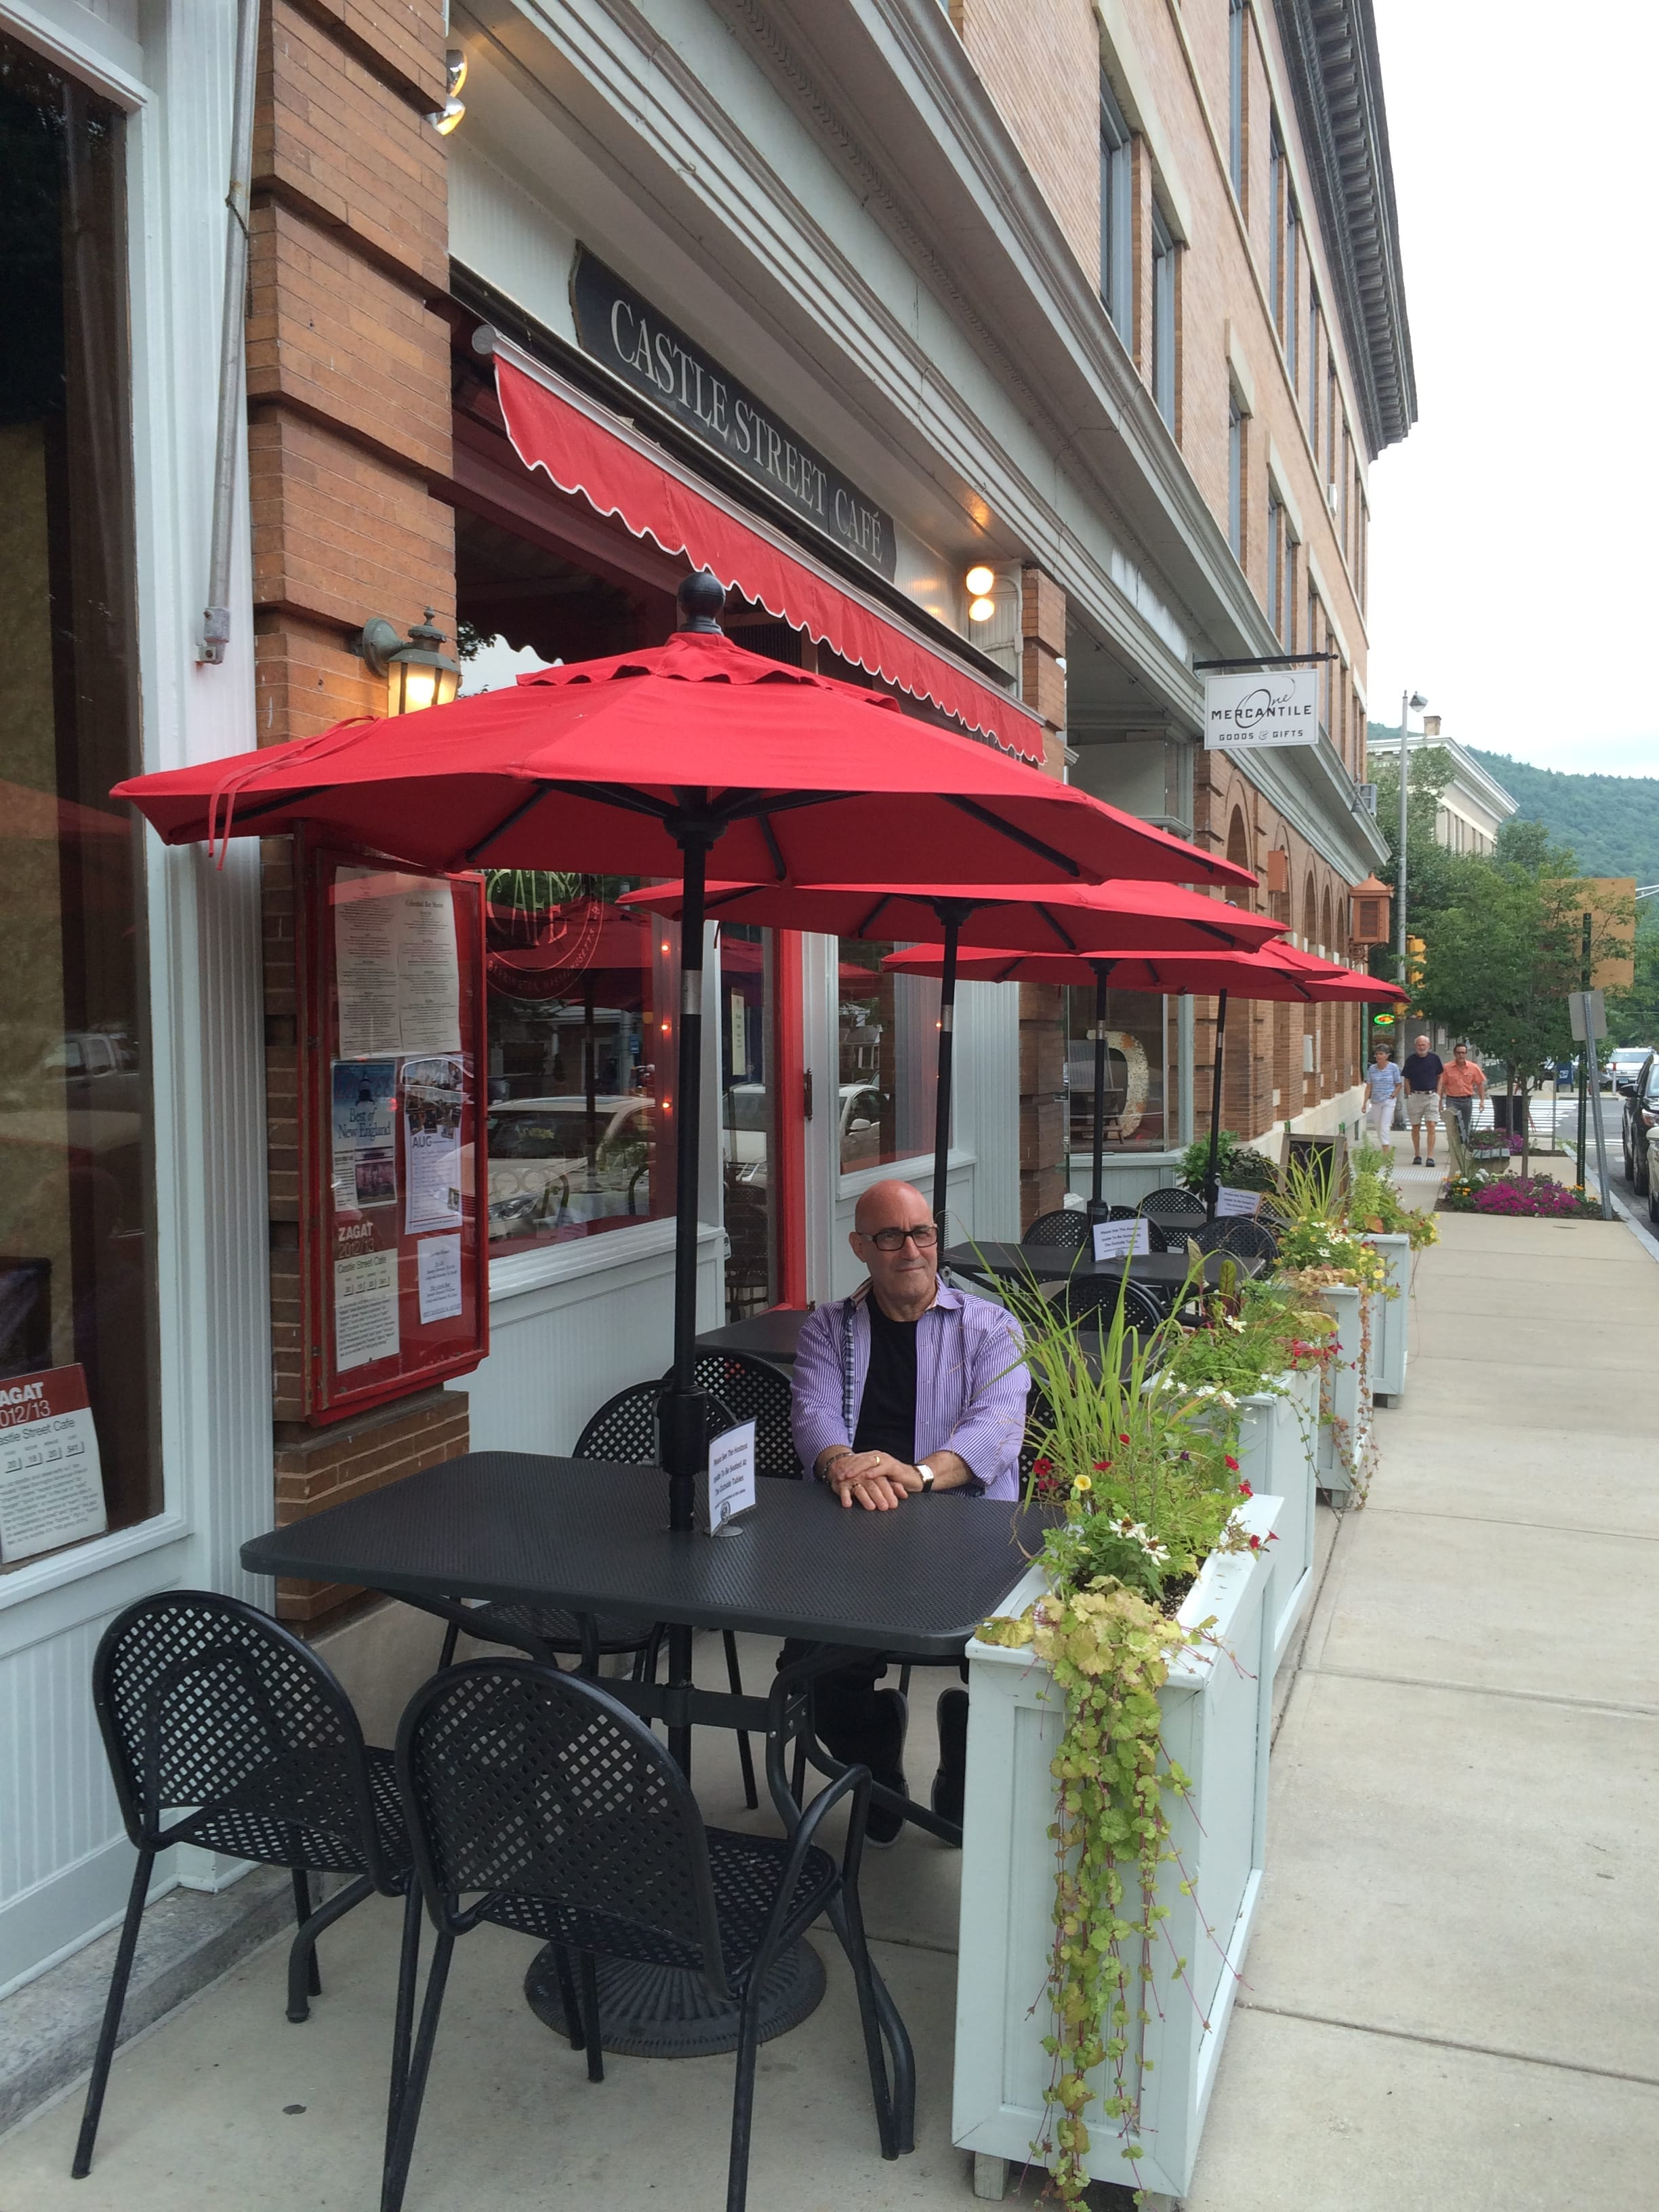 Umbrellas shelter diners at Castle Street Cafe. They could also shelter visitors to the new Main Street benches (once they're installed when the reconstruction project is completed). And yes, that's Alan Kalish at table.